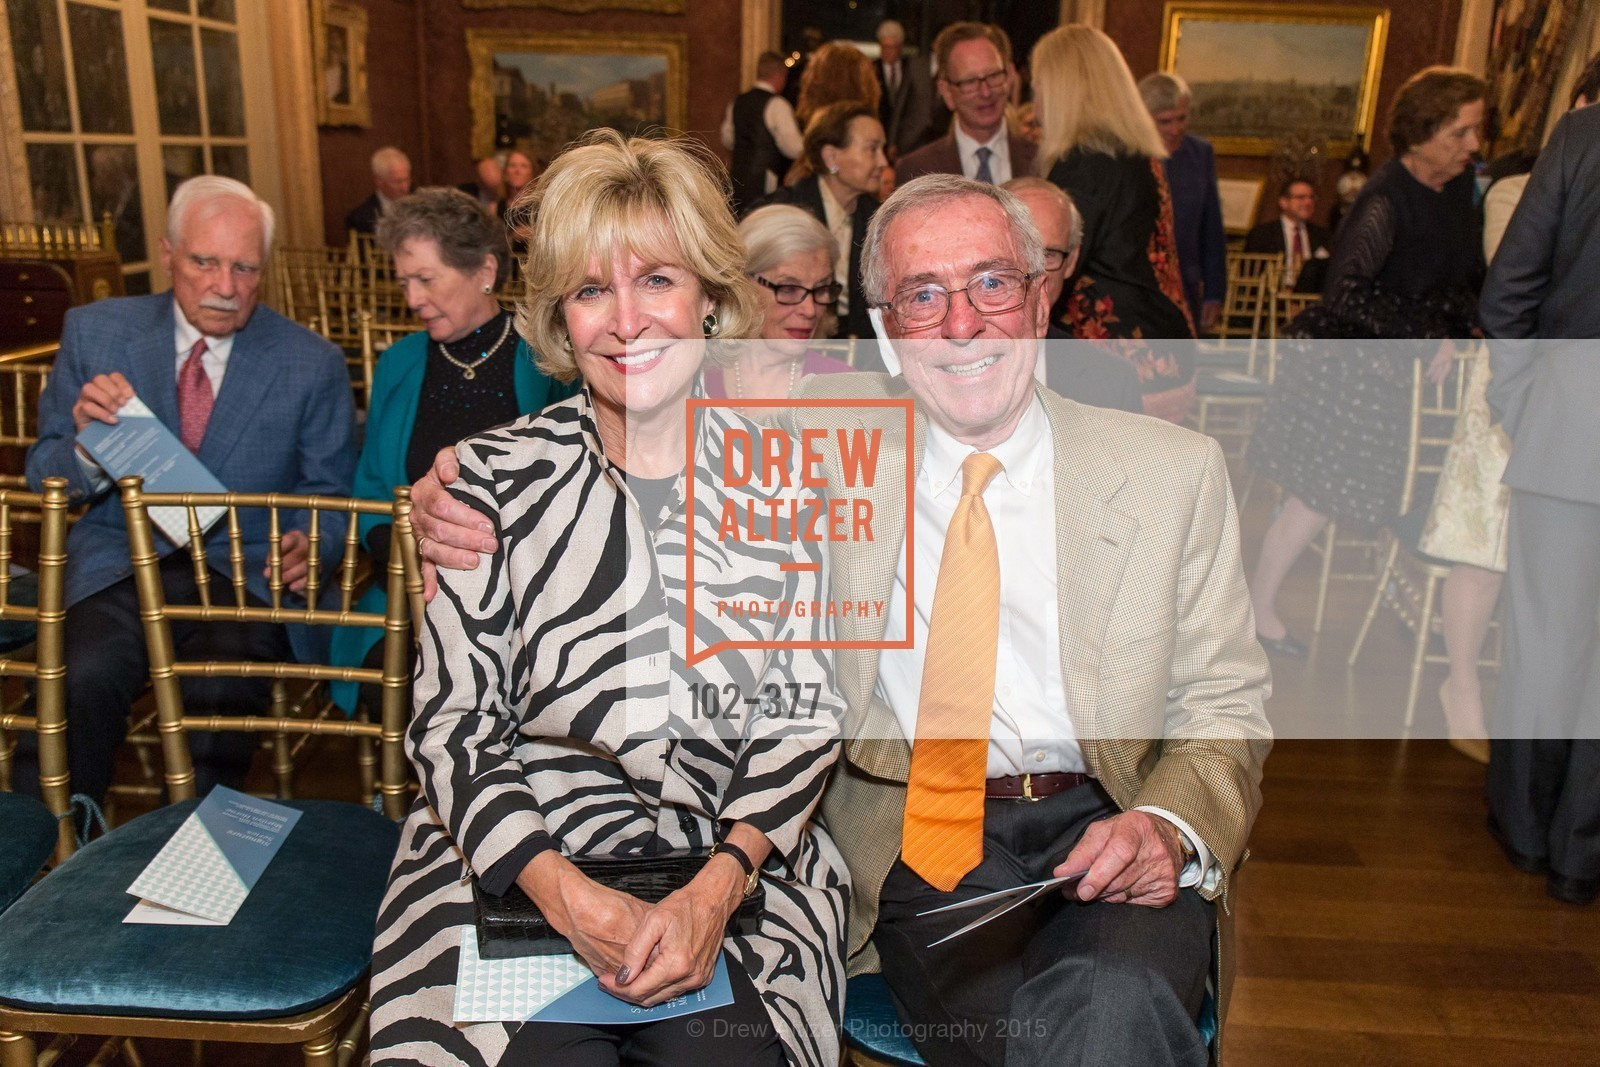 Jan Buckley, JIm Buckley, Getty Host SF Conservatory of Music with Marilyn Horne, Private Residence, October 15th, 2015,Drew Altizer, Drew Altizer Photography, full-service agency, private events, San Francisco photographer, photographer california